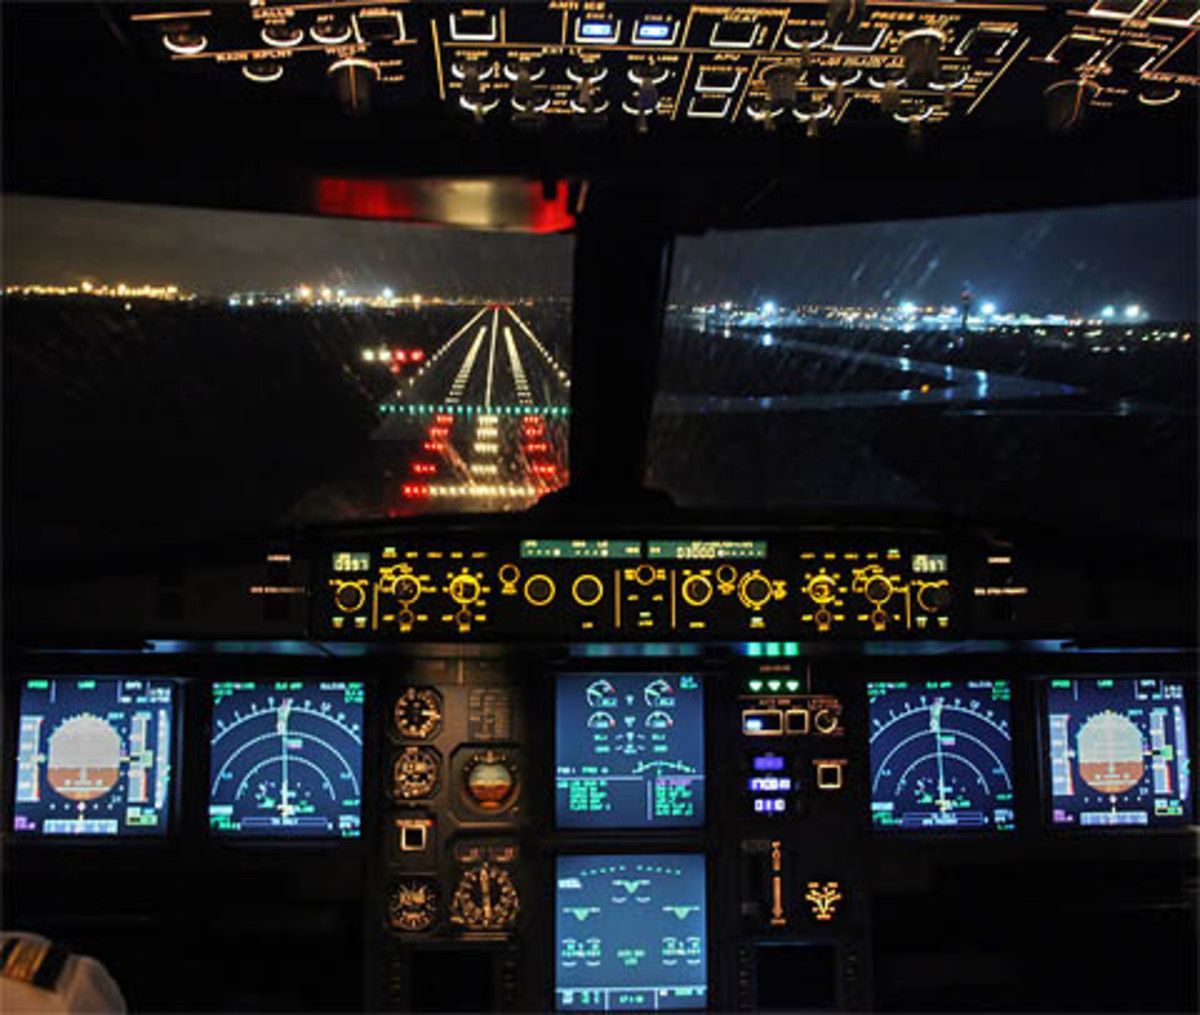 An Airline Pilot's Tips for Holiday Air Travel